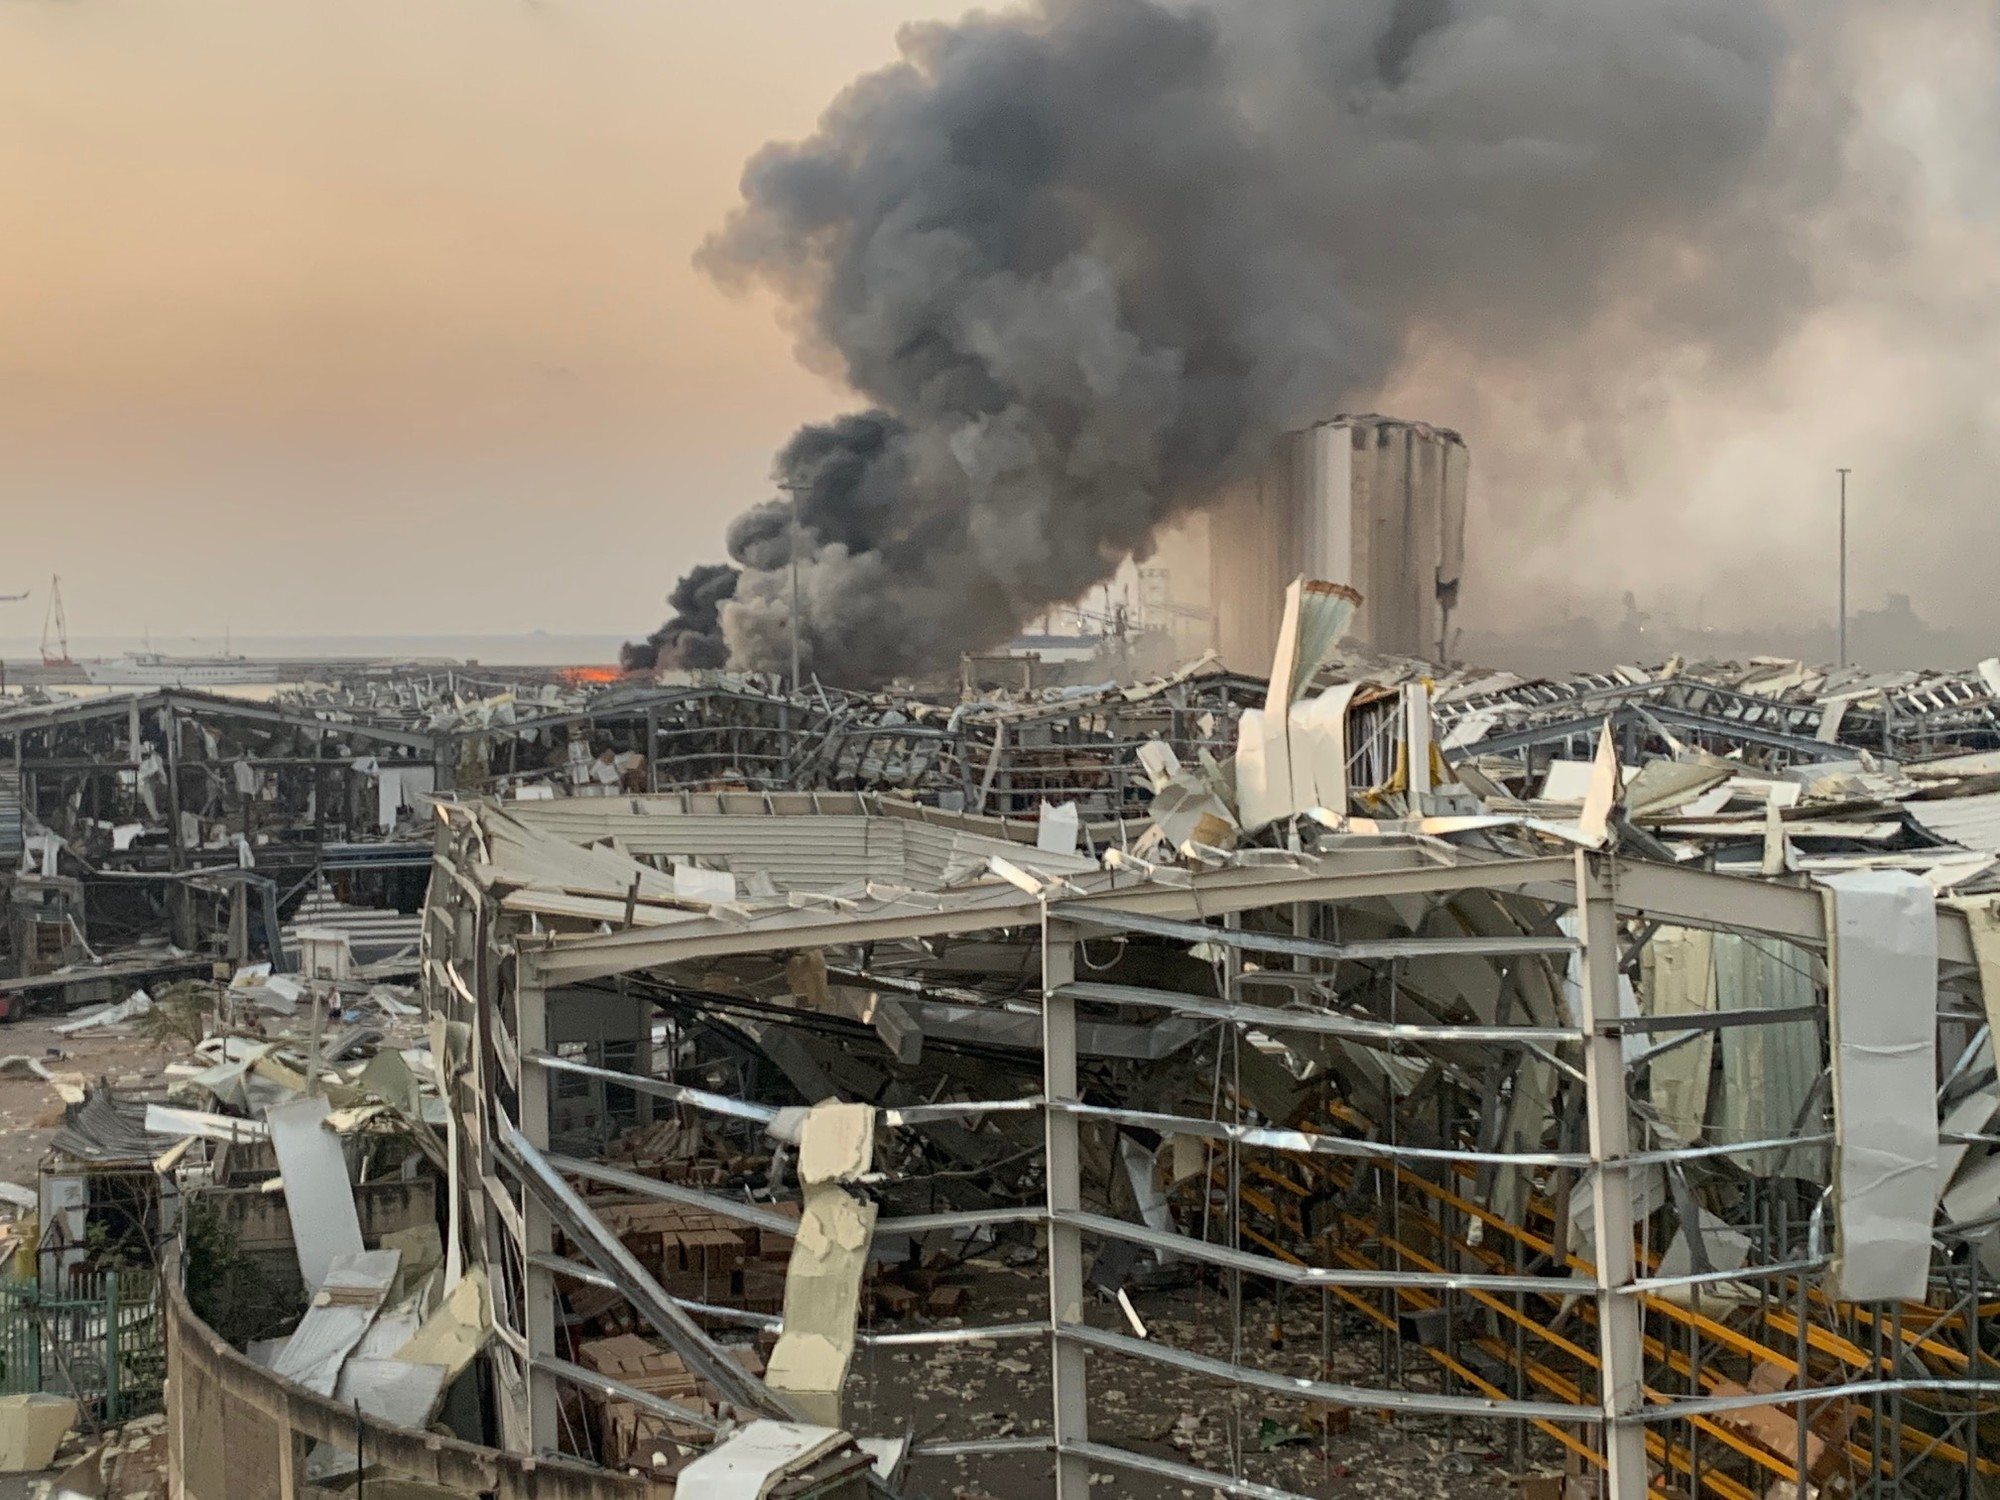 A plume of smoke rises amid the wreckage of the port in Beirut.